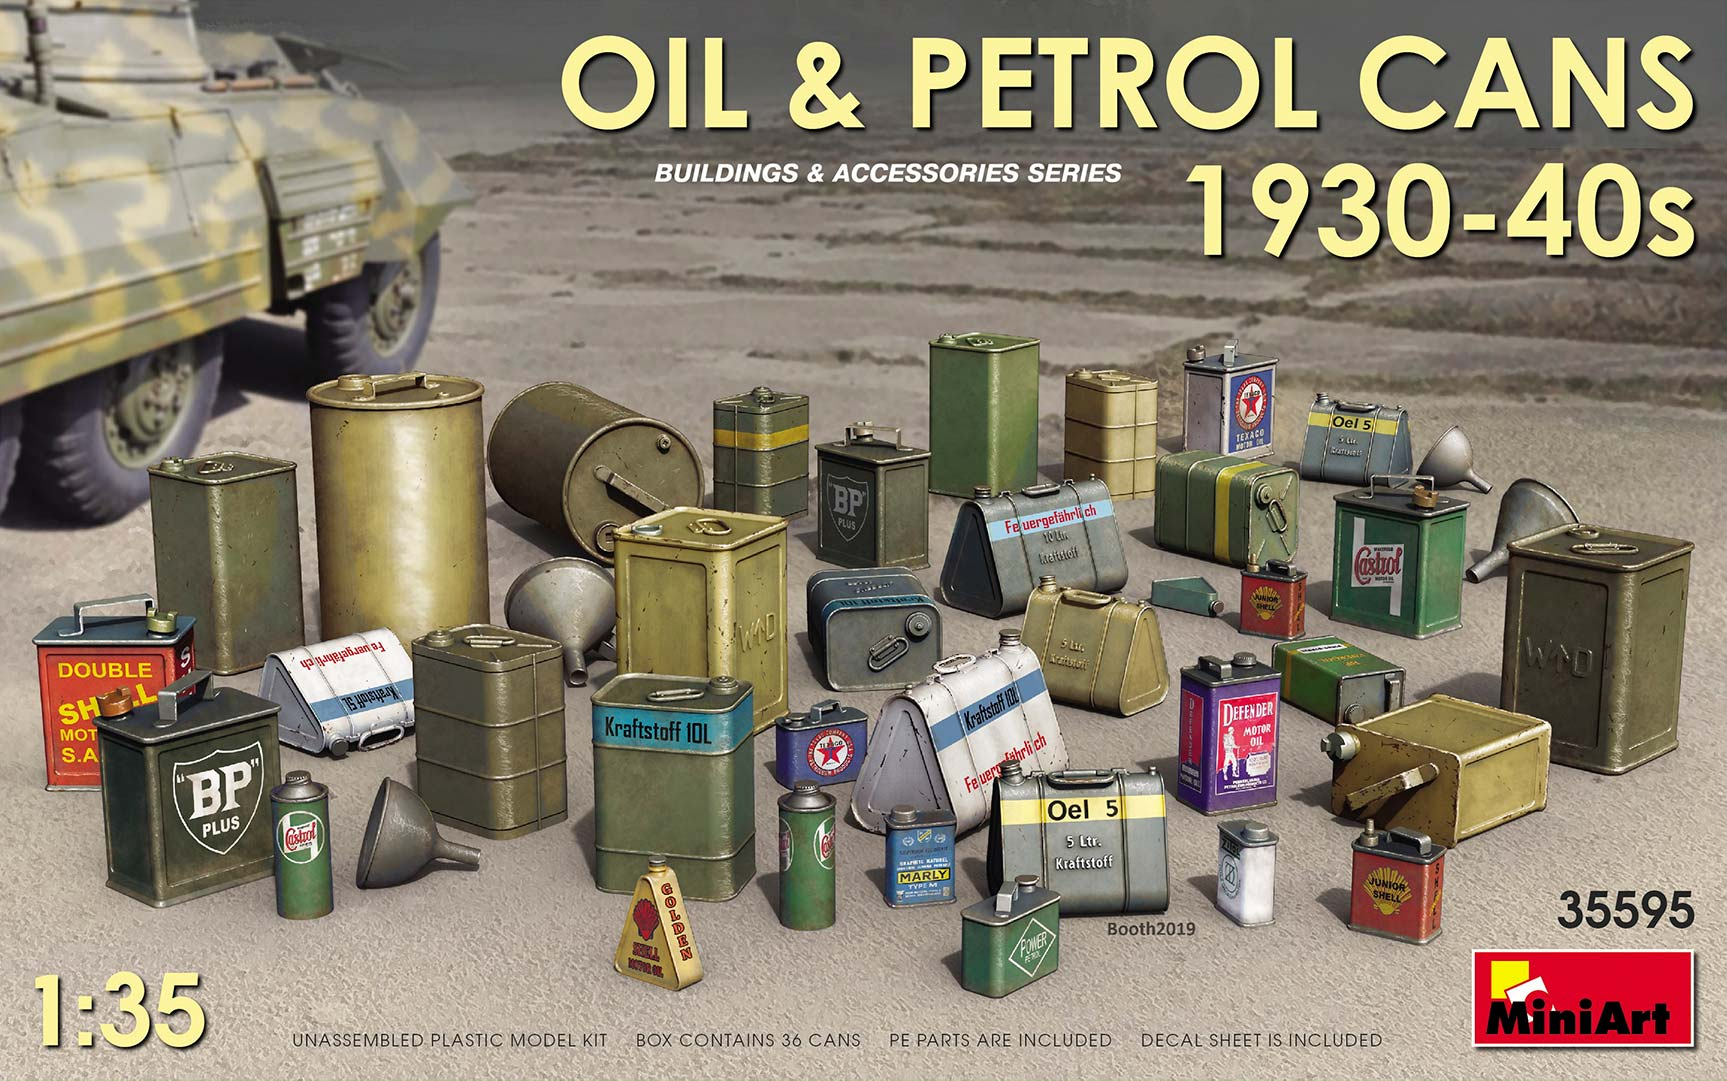 Miniart Oil & Petrol Cans 1930-40s